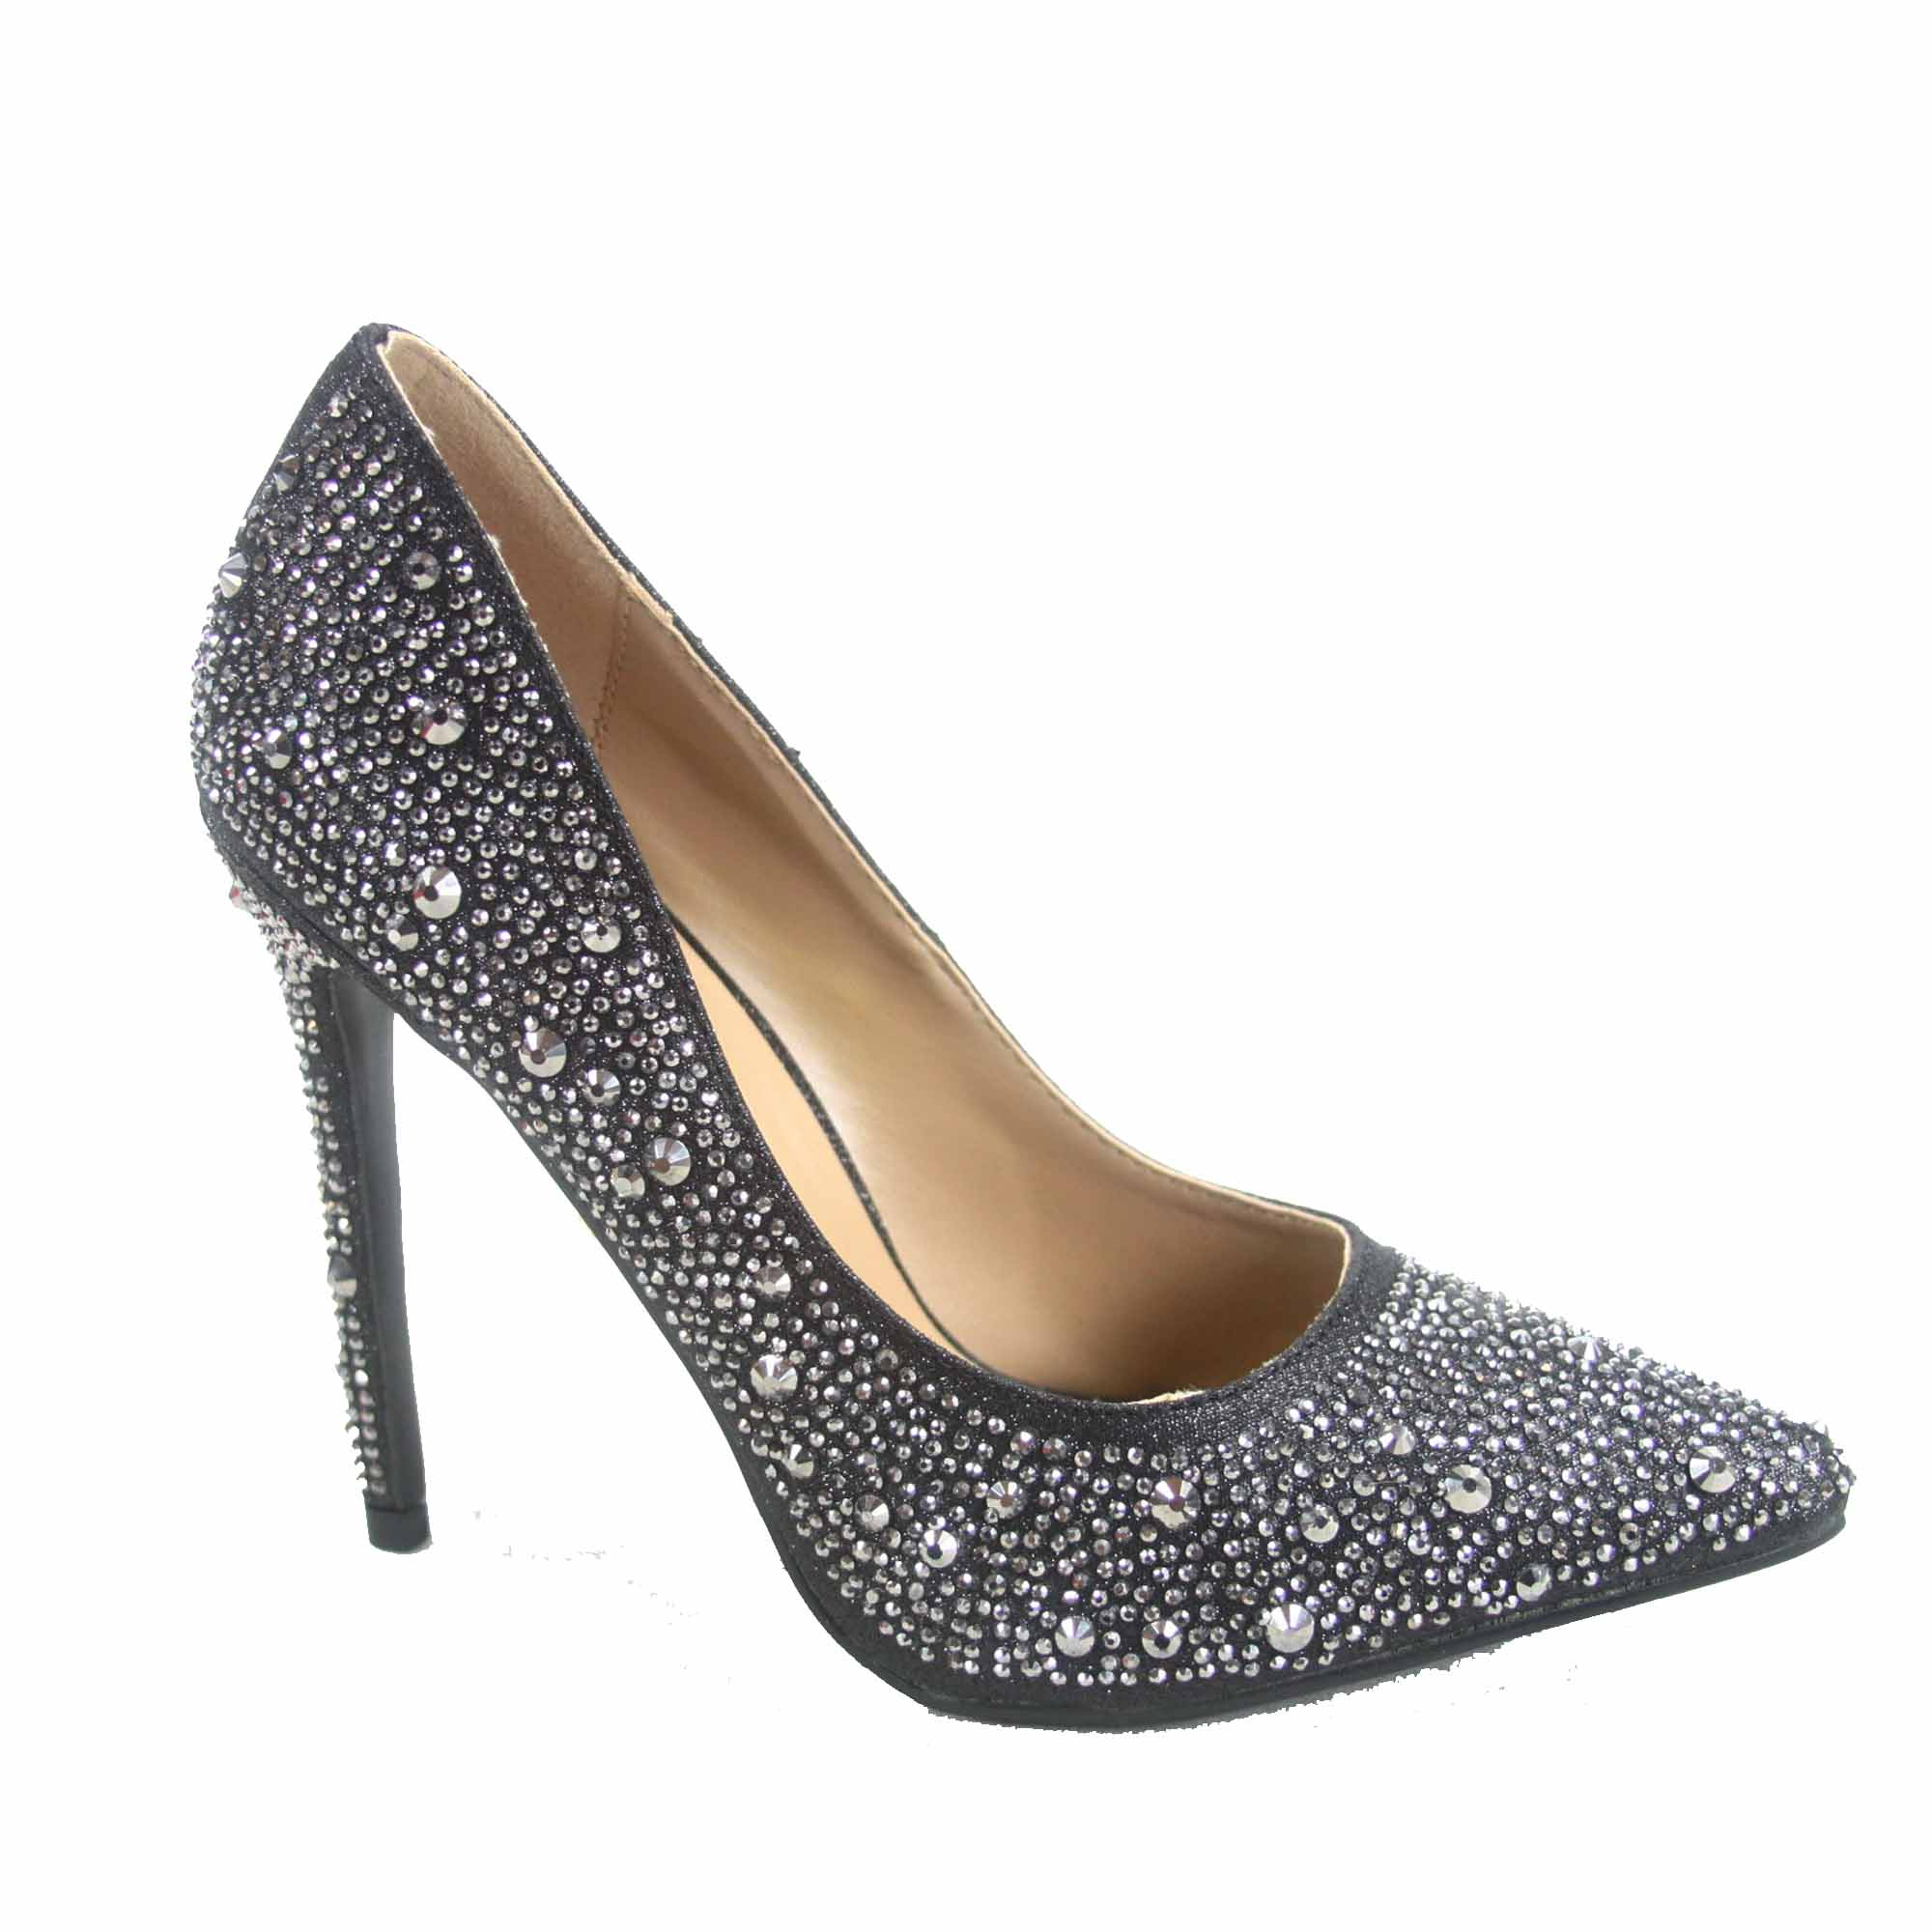 Belinda-96 Women's Rhinestone  Pointed Toe Stiletto High Heel Pump Bridal Shoes